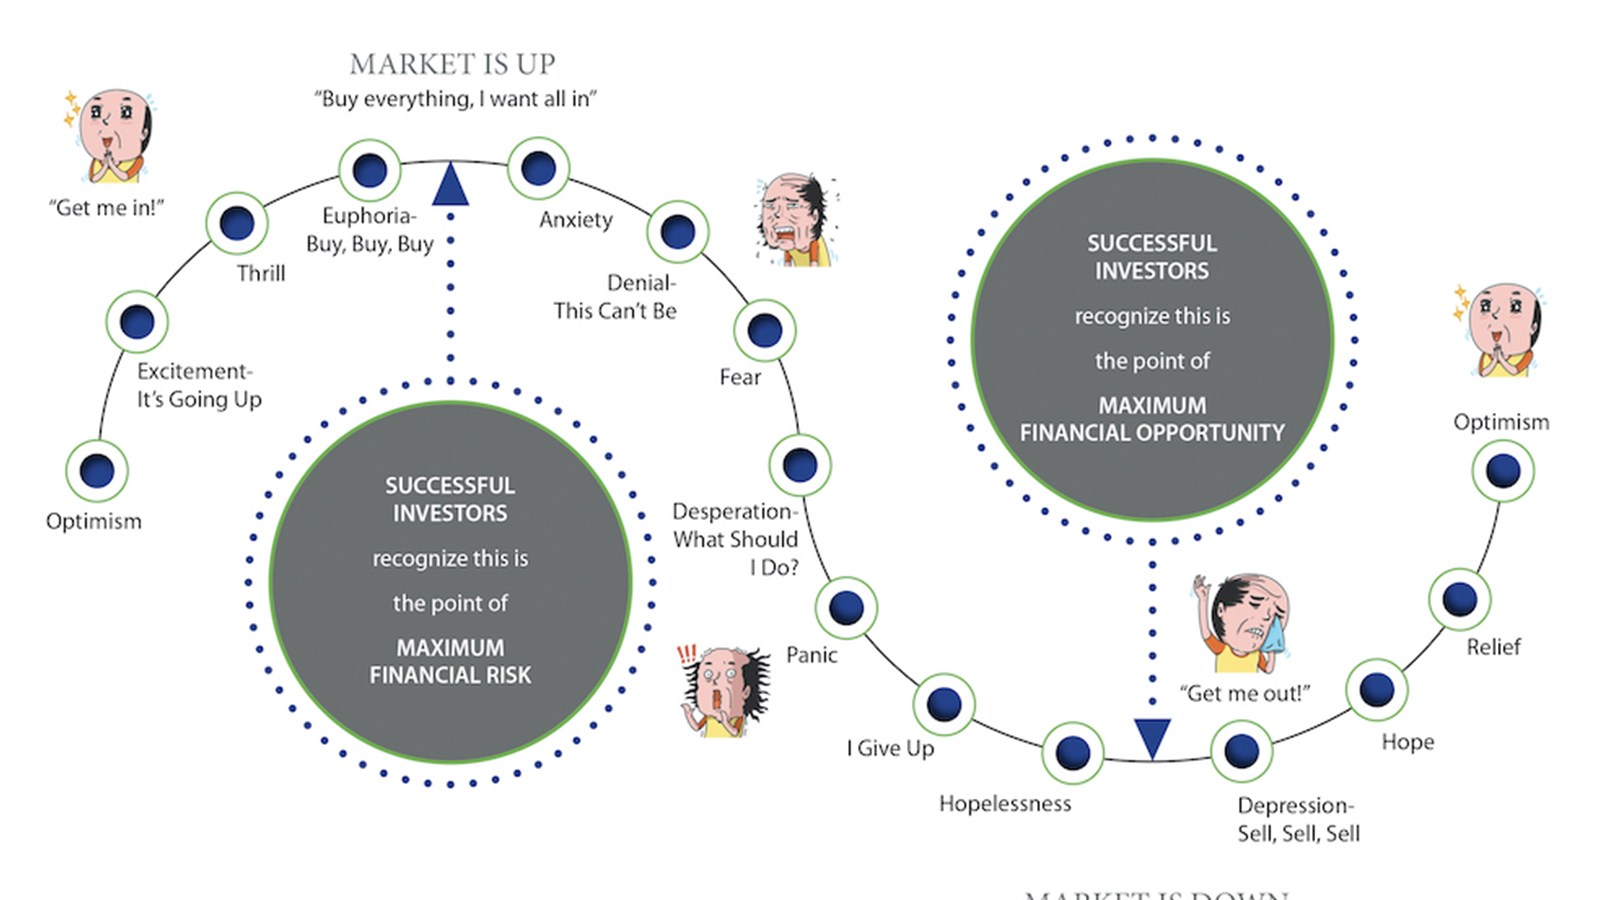 Cycle of Market Emotions optimism, thrill, panic, anxiety, depression